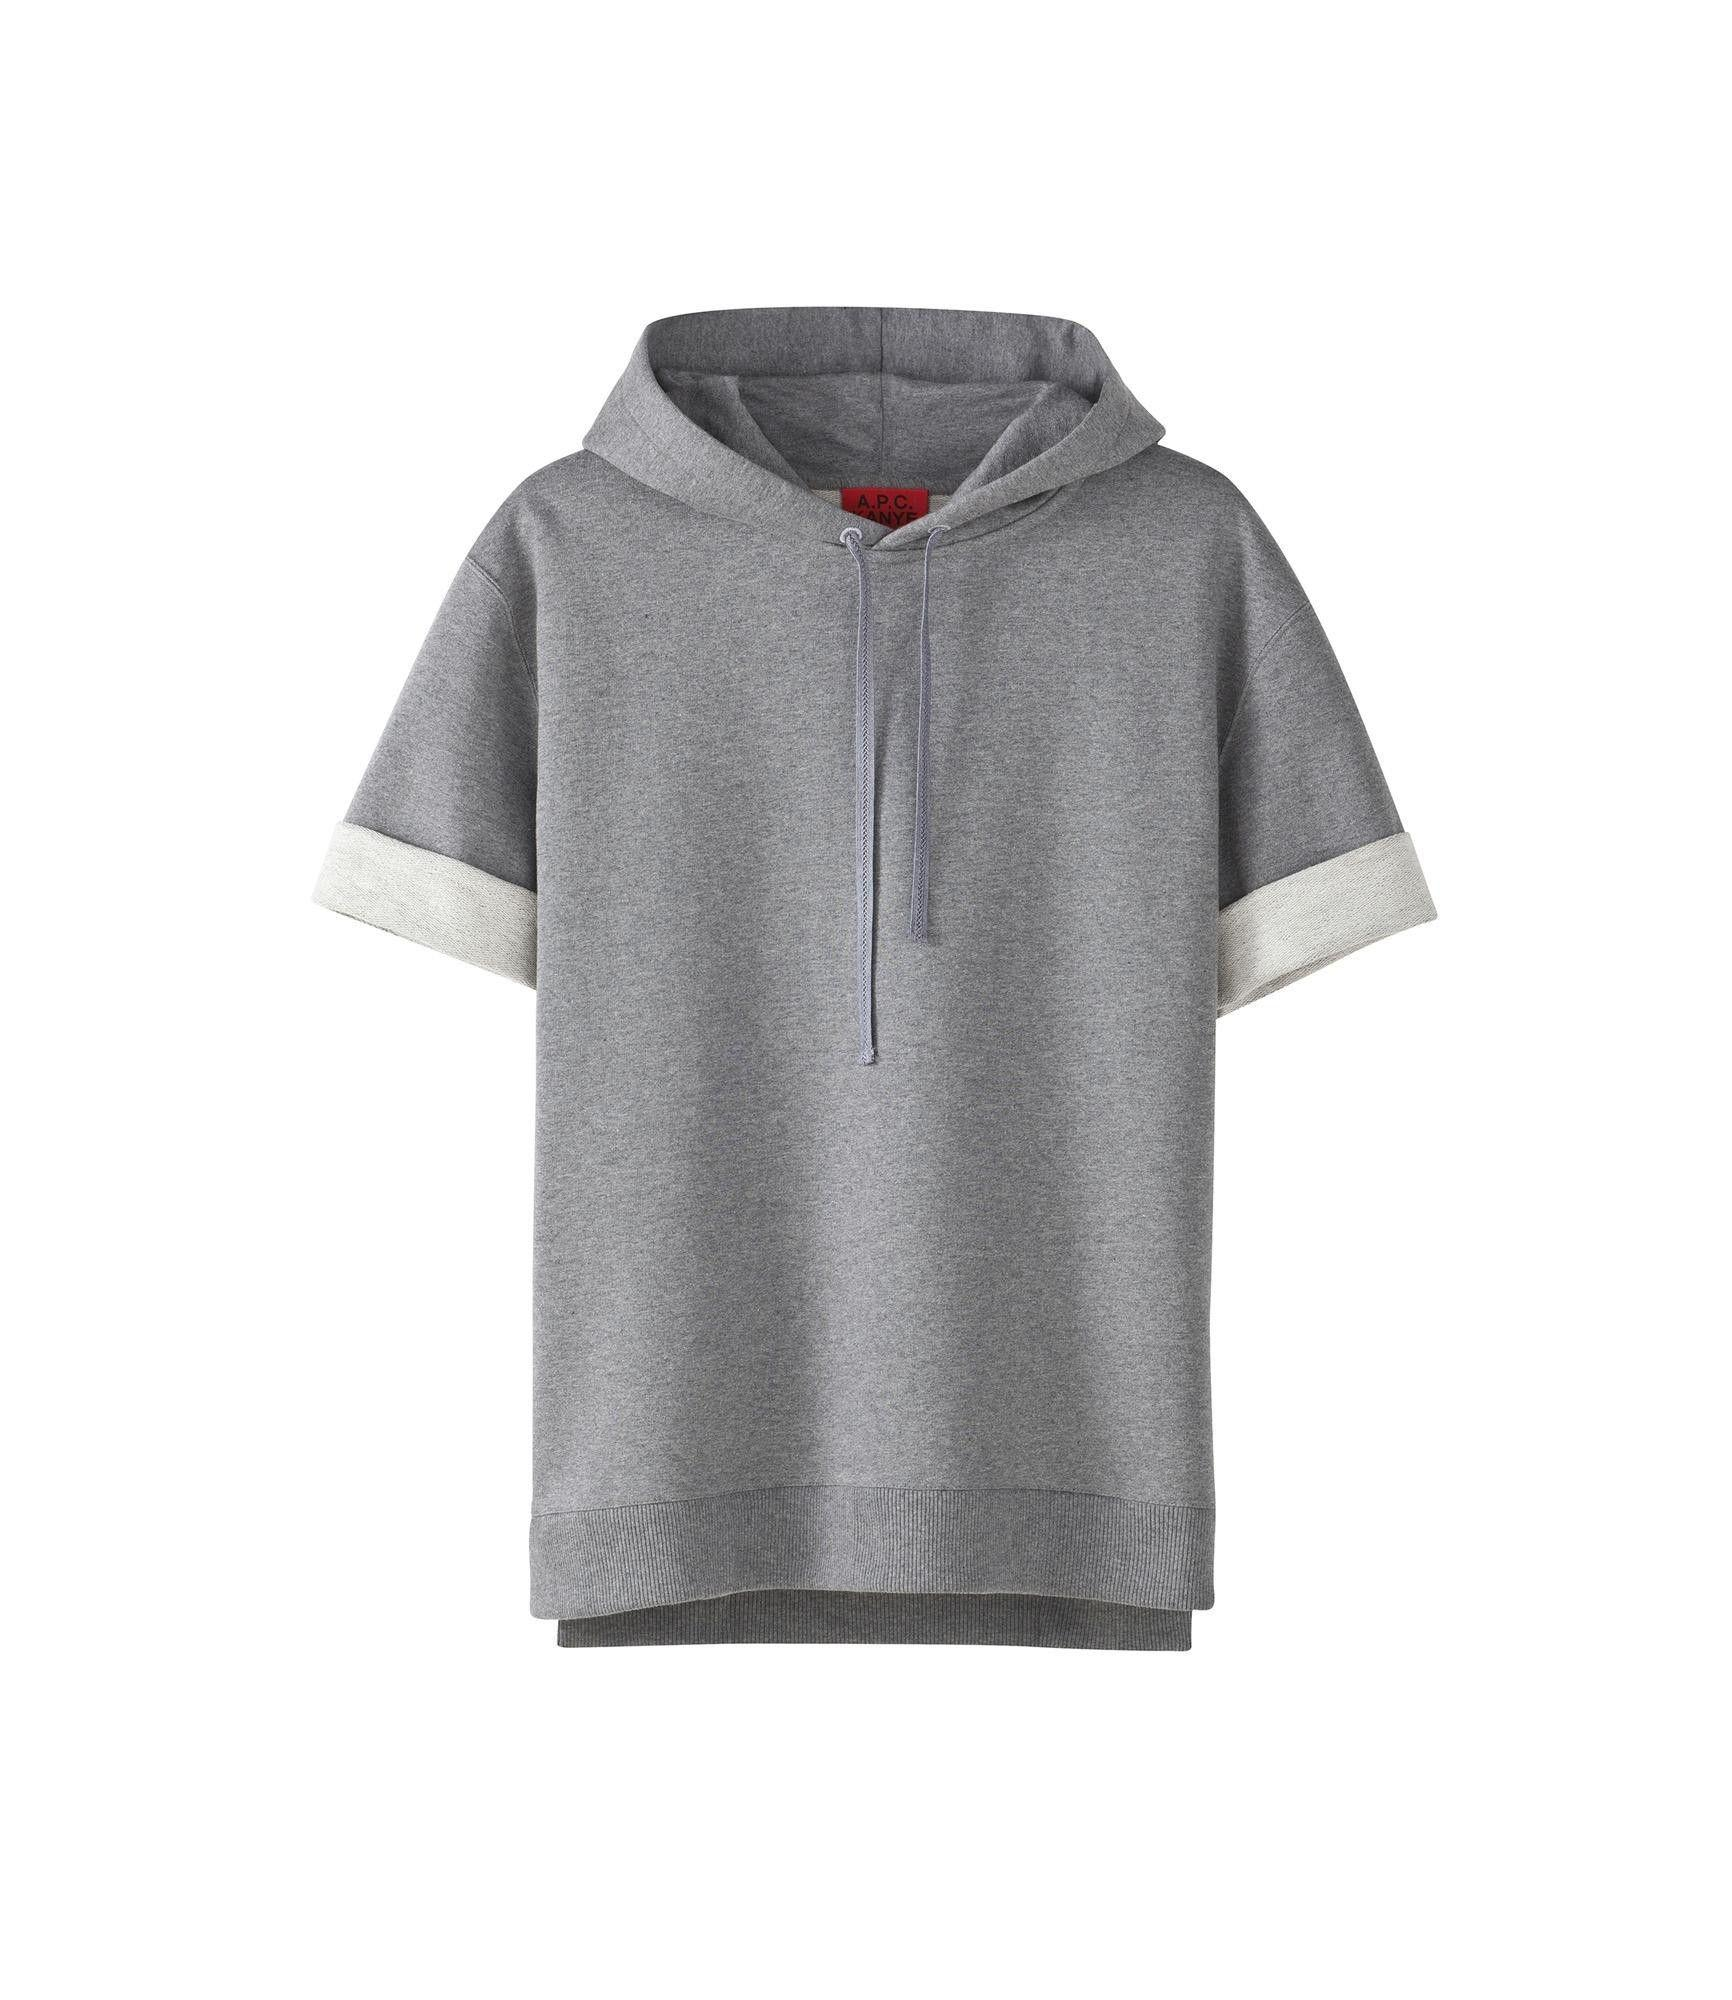 Wholesale-Free shipping unique A.p.c x kanye pullover half sleeve sweatshirt apc kanyewest hoodie black and gray